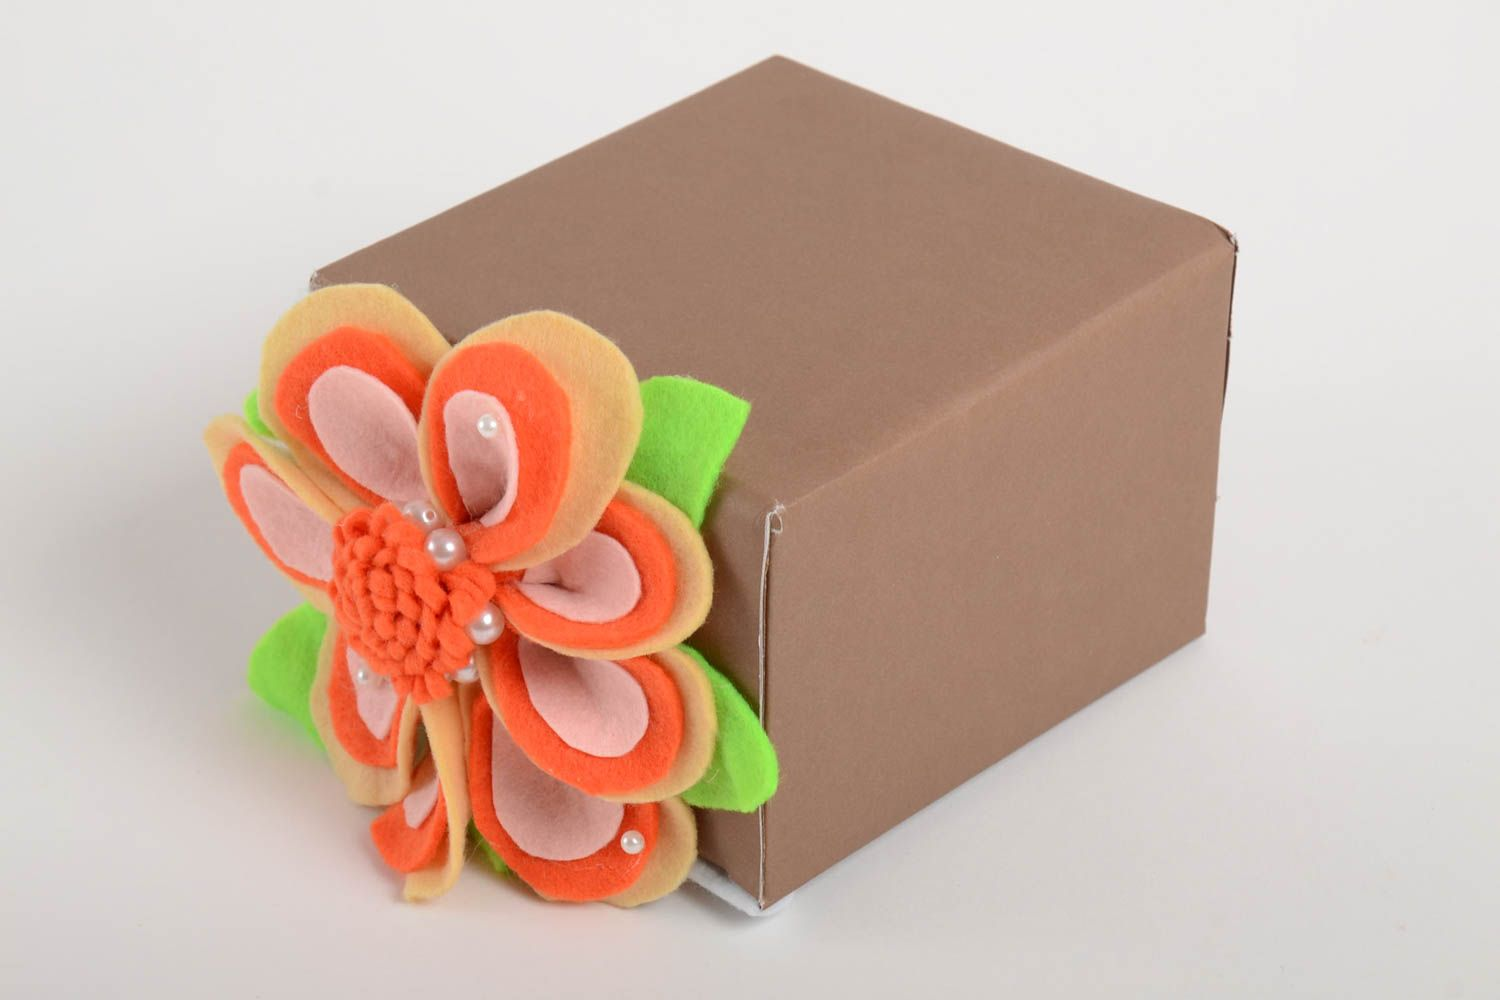 birthday Handmade gift box cardboard gift bow gift wrapping ideas boxes for girls - MADEheart.com